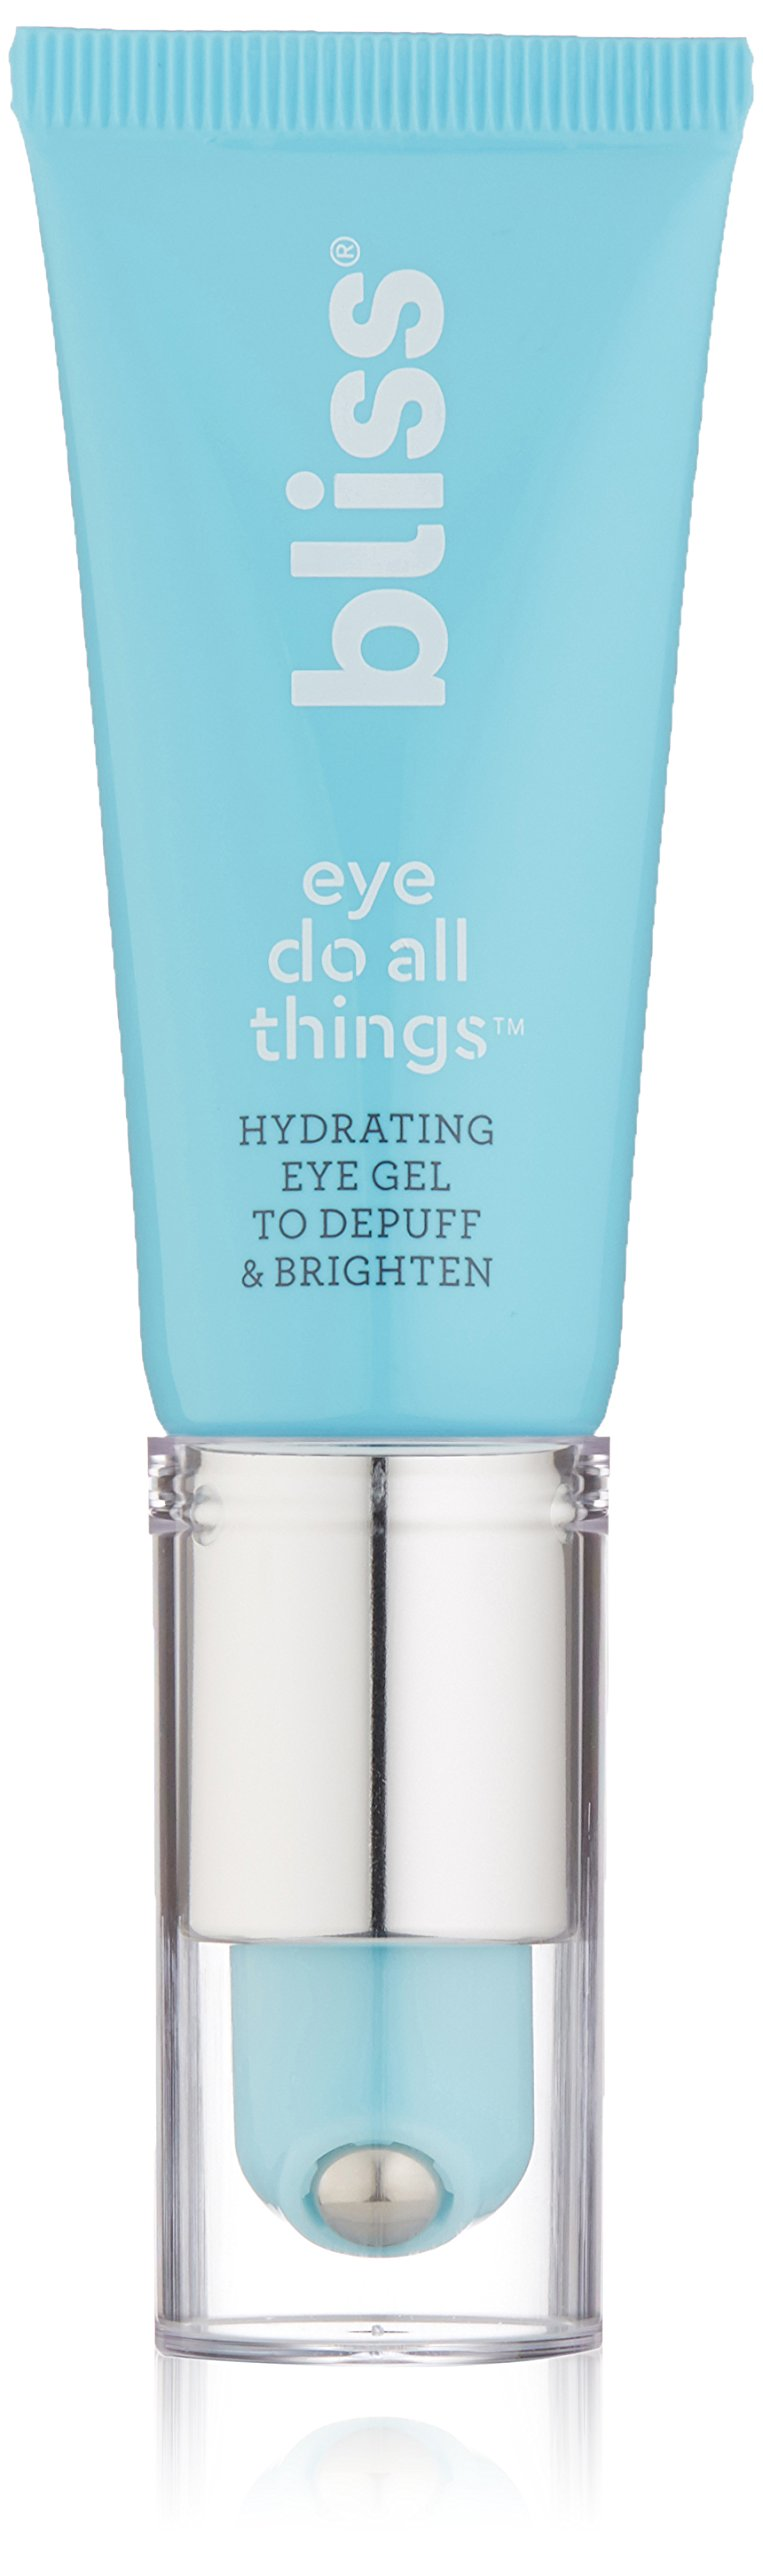 Bliss Eye Do All Things Hydrating Eye Gel Depuff & Brighten Straight-from-the-Spa Paraben Free, Cruelty Free 0.7 fl oz